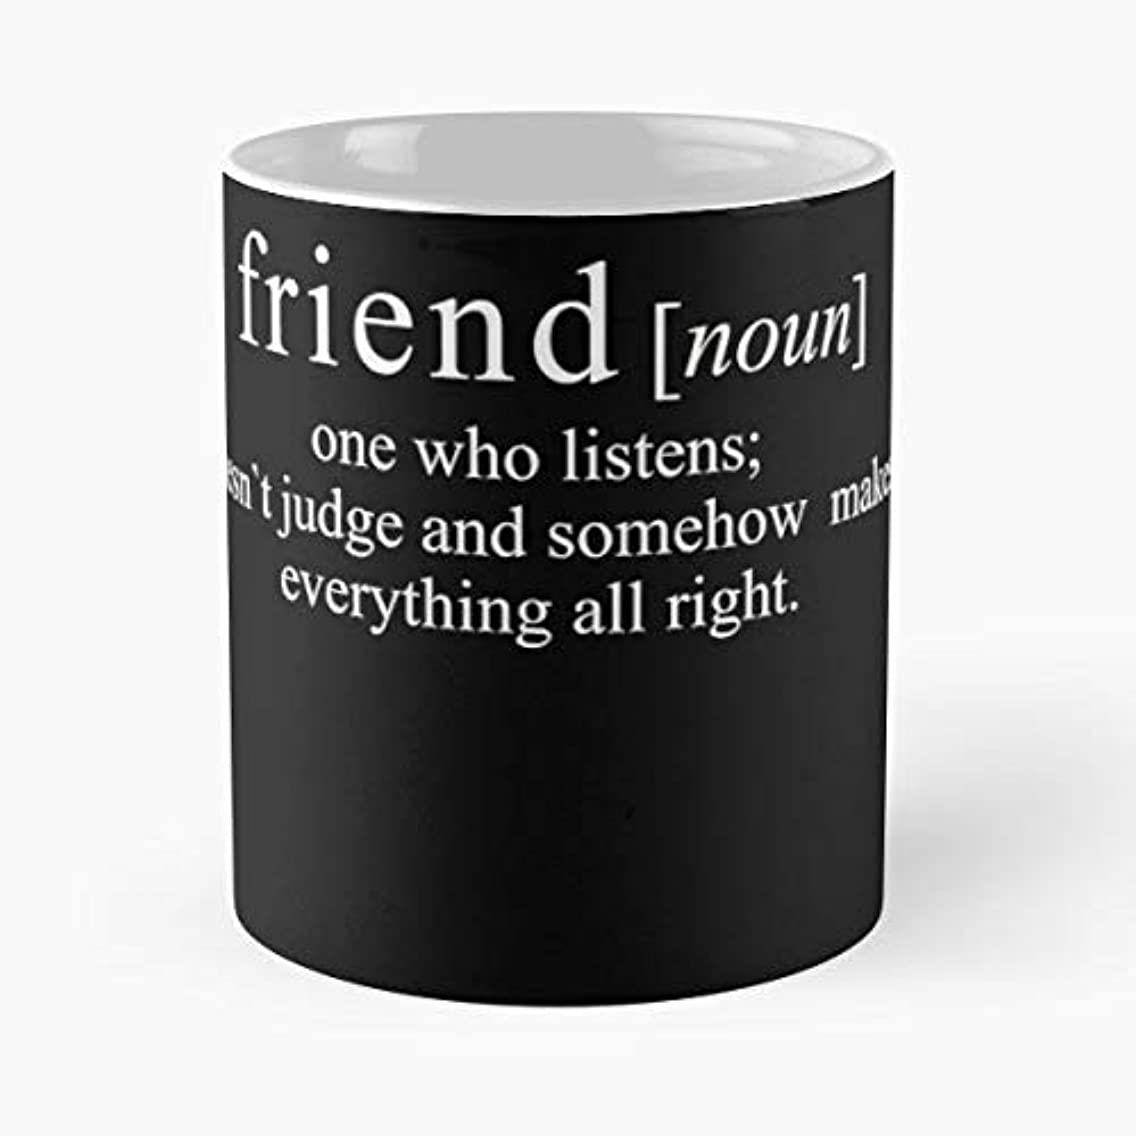 Friend Friendship Quote Saying - Handmade Funny 11oz Mug Best Birthday Gifts For Men Women Friends Work Great Holidays Day Gift